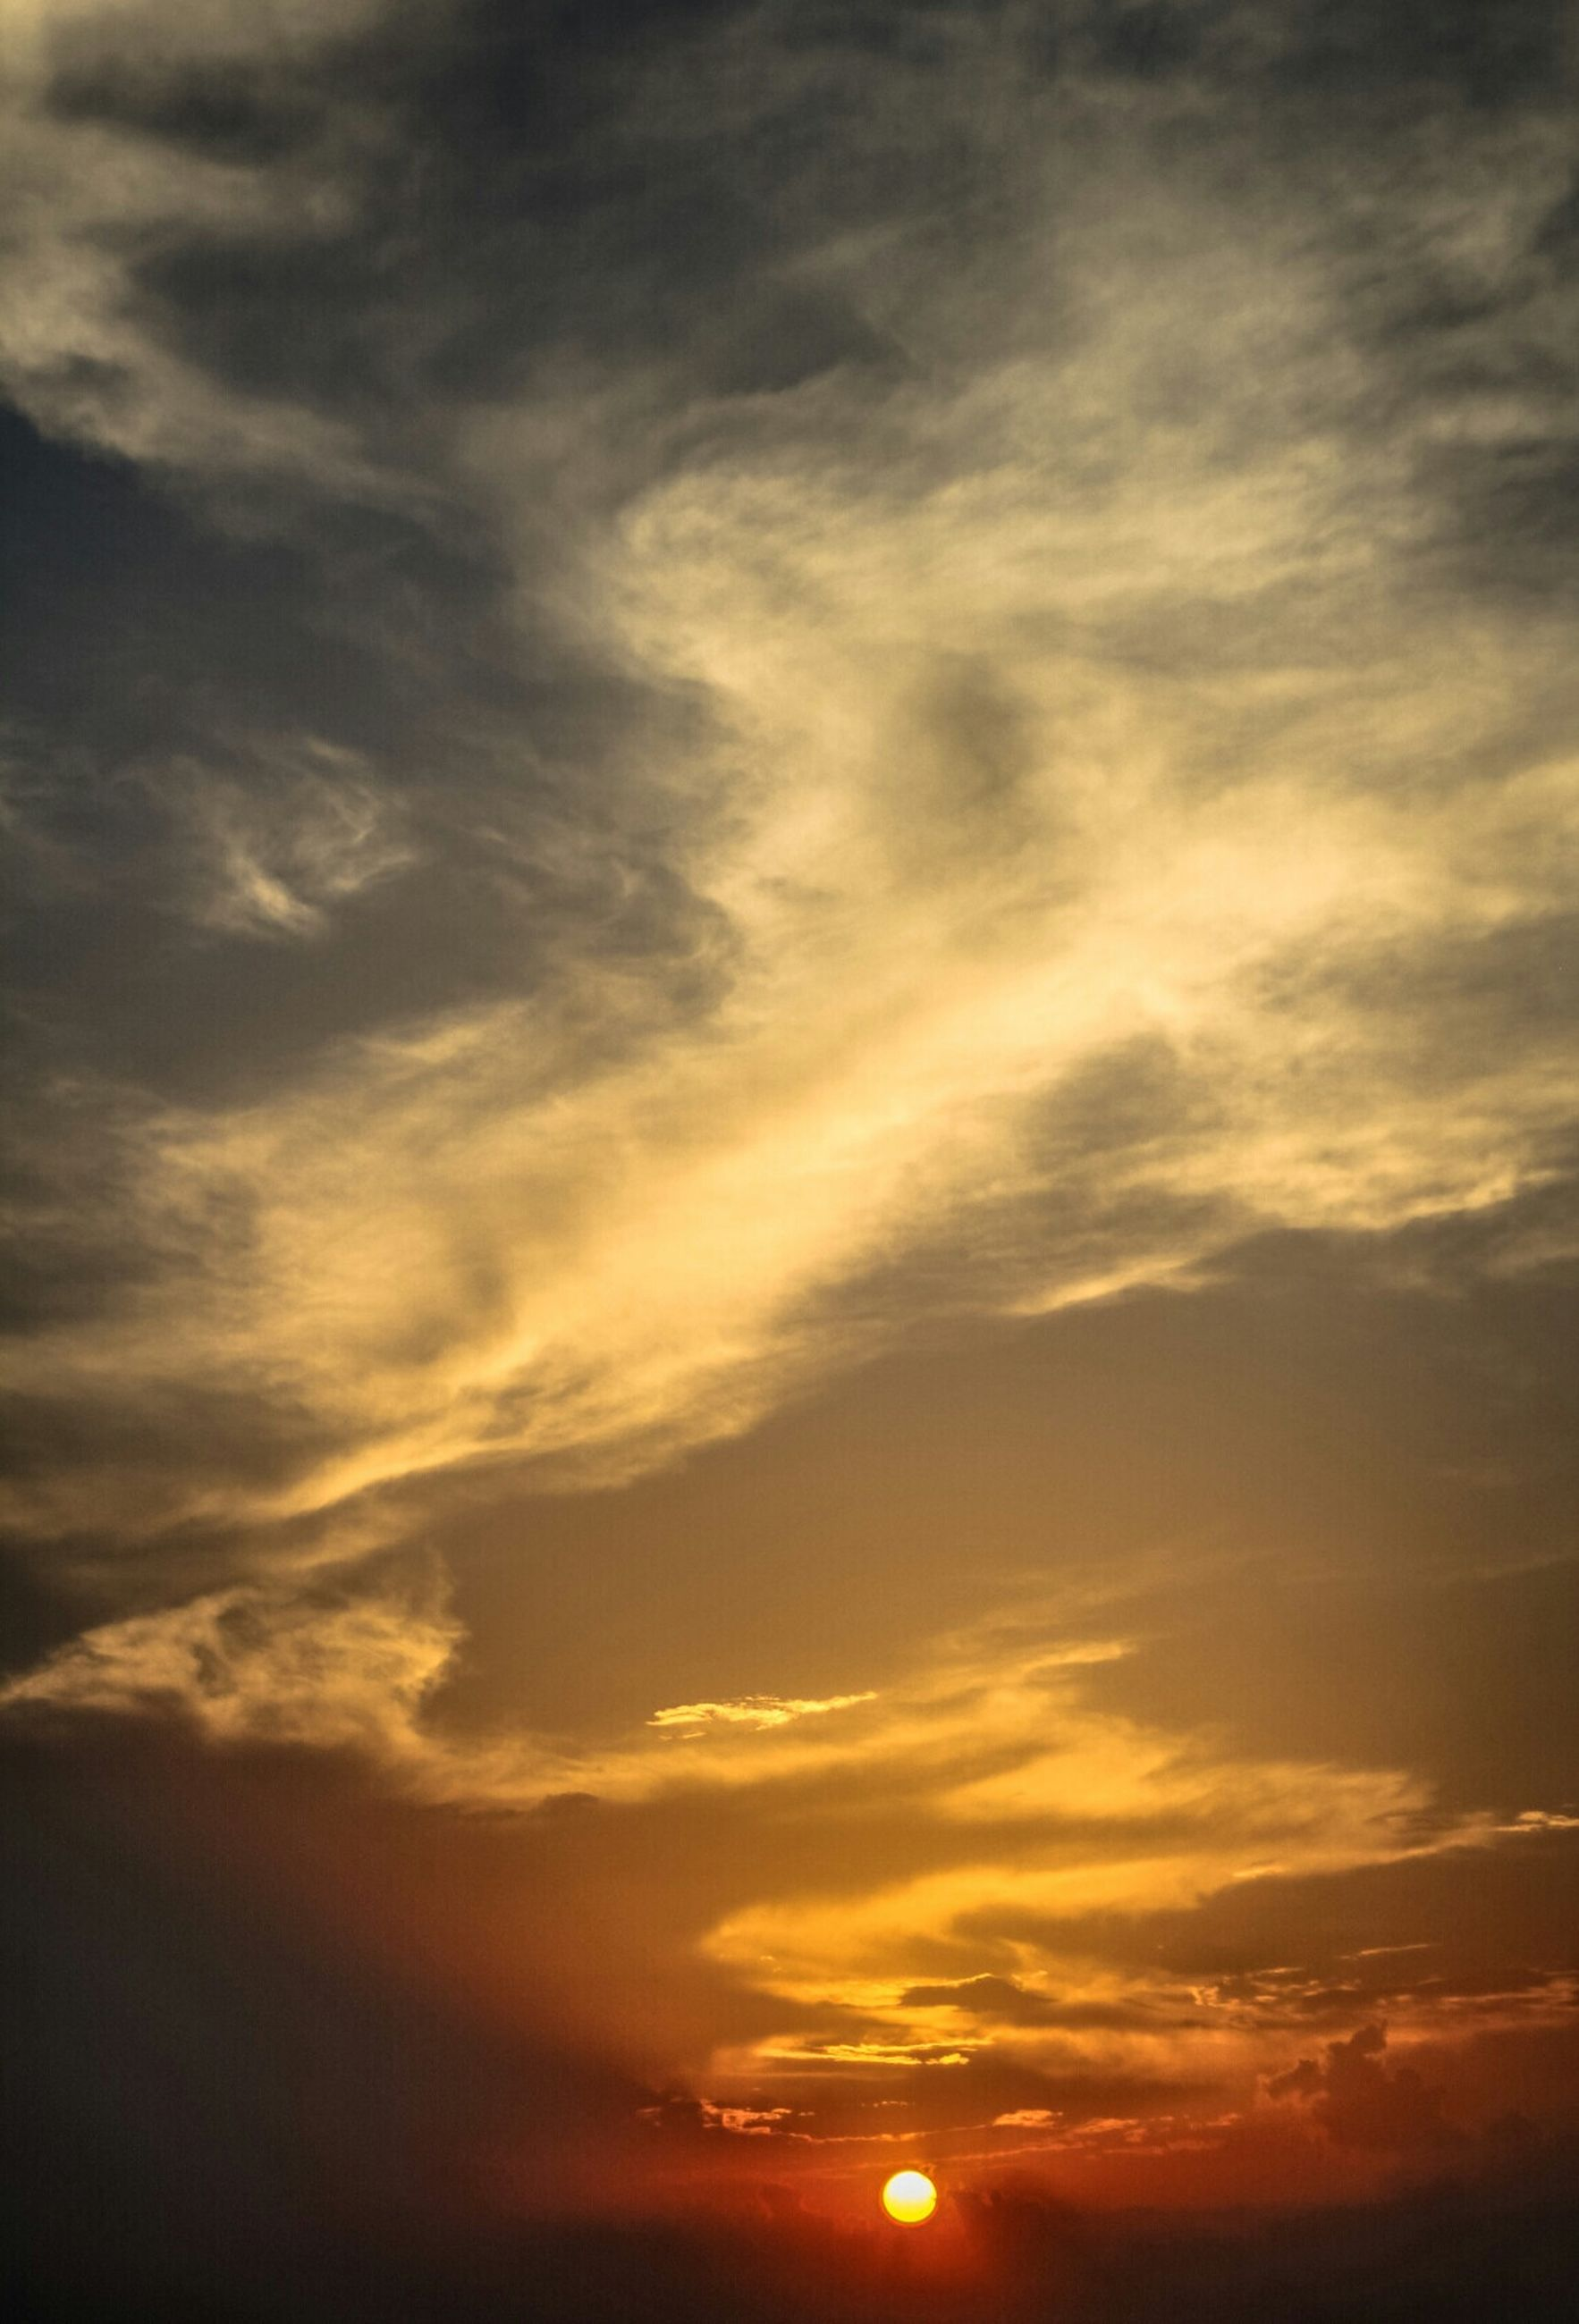 sunset, sky, scenics, beauty in nature, tranquility, tranquil scene, orange color, cloud - sky, idyllic, nature, low angle view, sun, sky only, dramatic sky, silhouette, cloudscape, cloudy, majestic, backgrounds, cloud